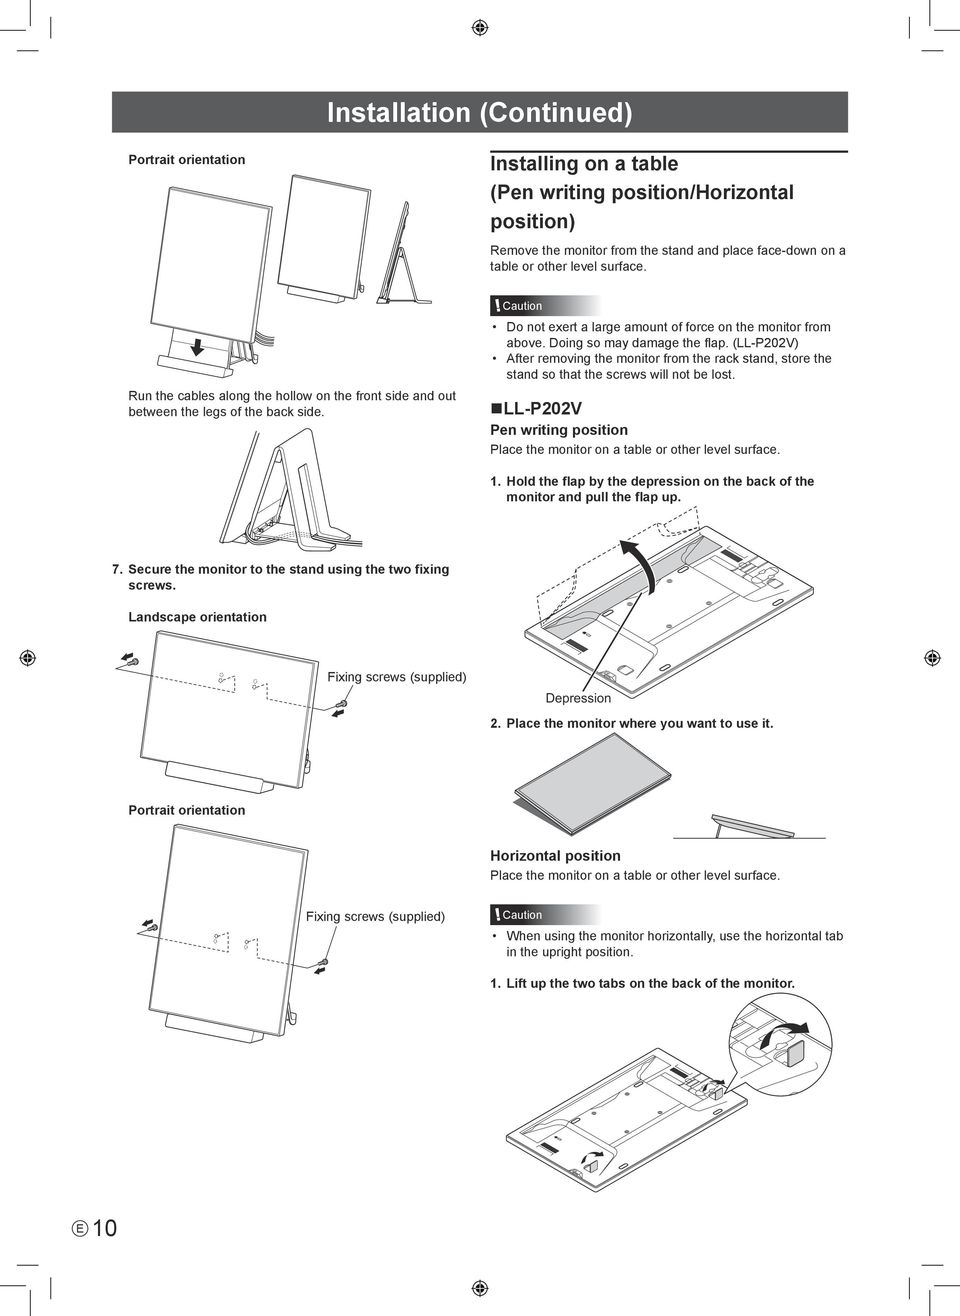 (LL-P202V) After removing the monitor from the rack stand, store the stand so that the screws will not be lost. LL-P202V Pen writing position Place the monitor on a table or other level surface. 1.